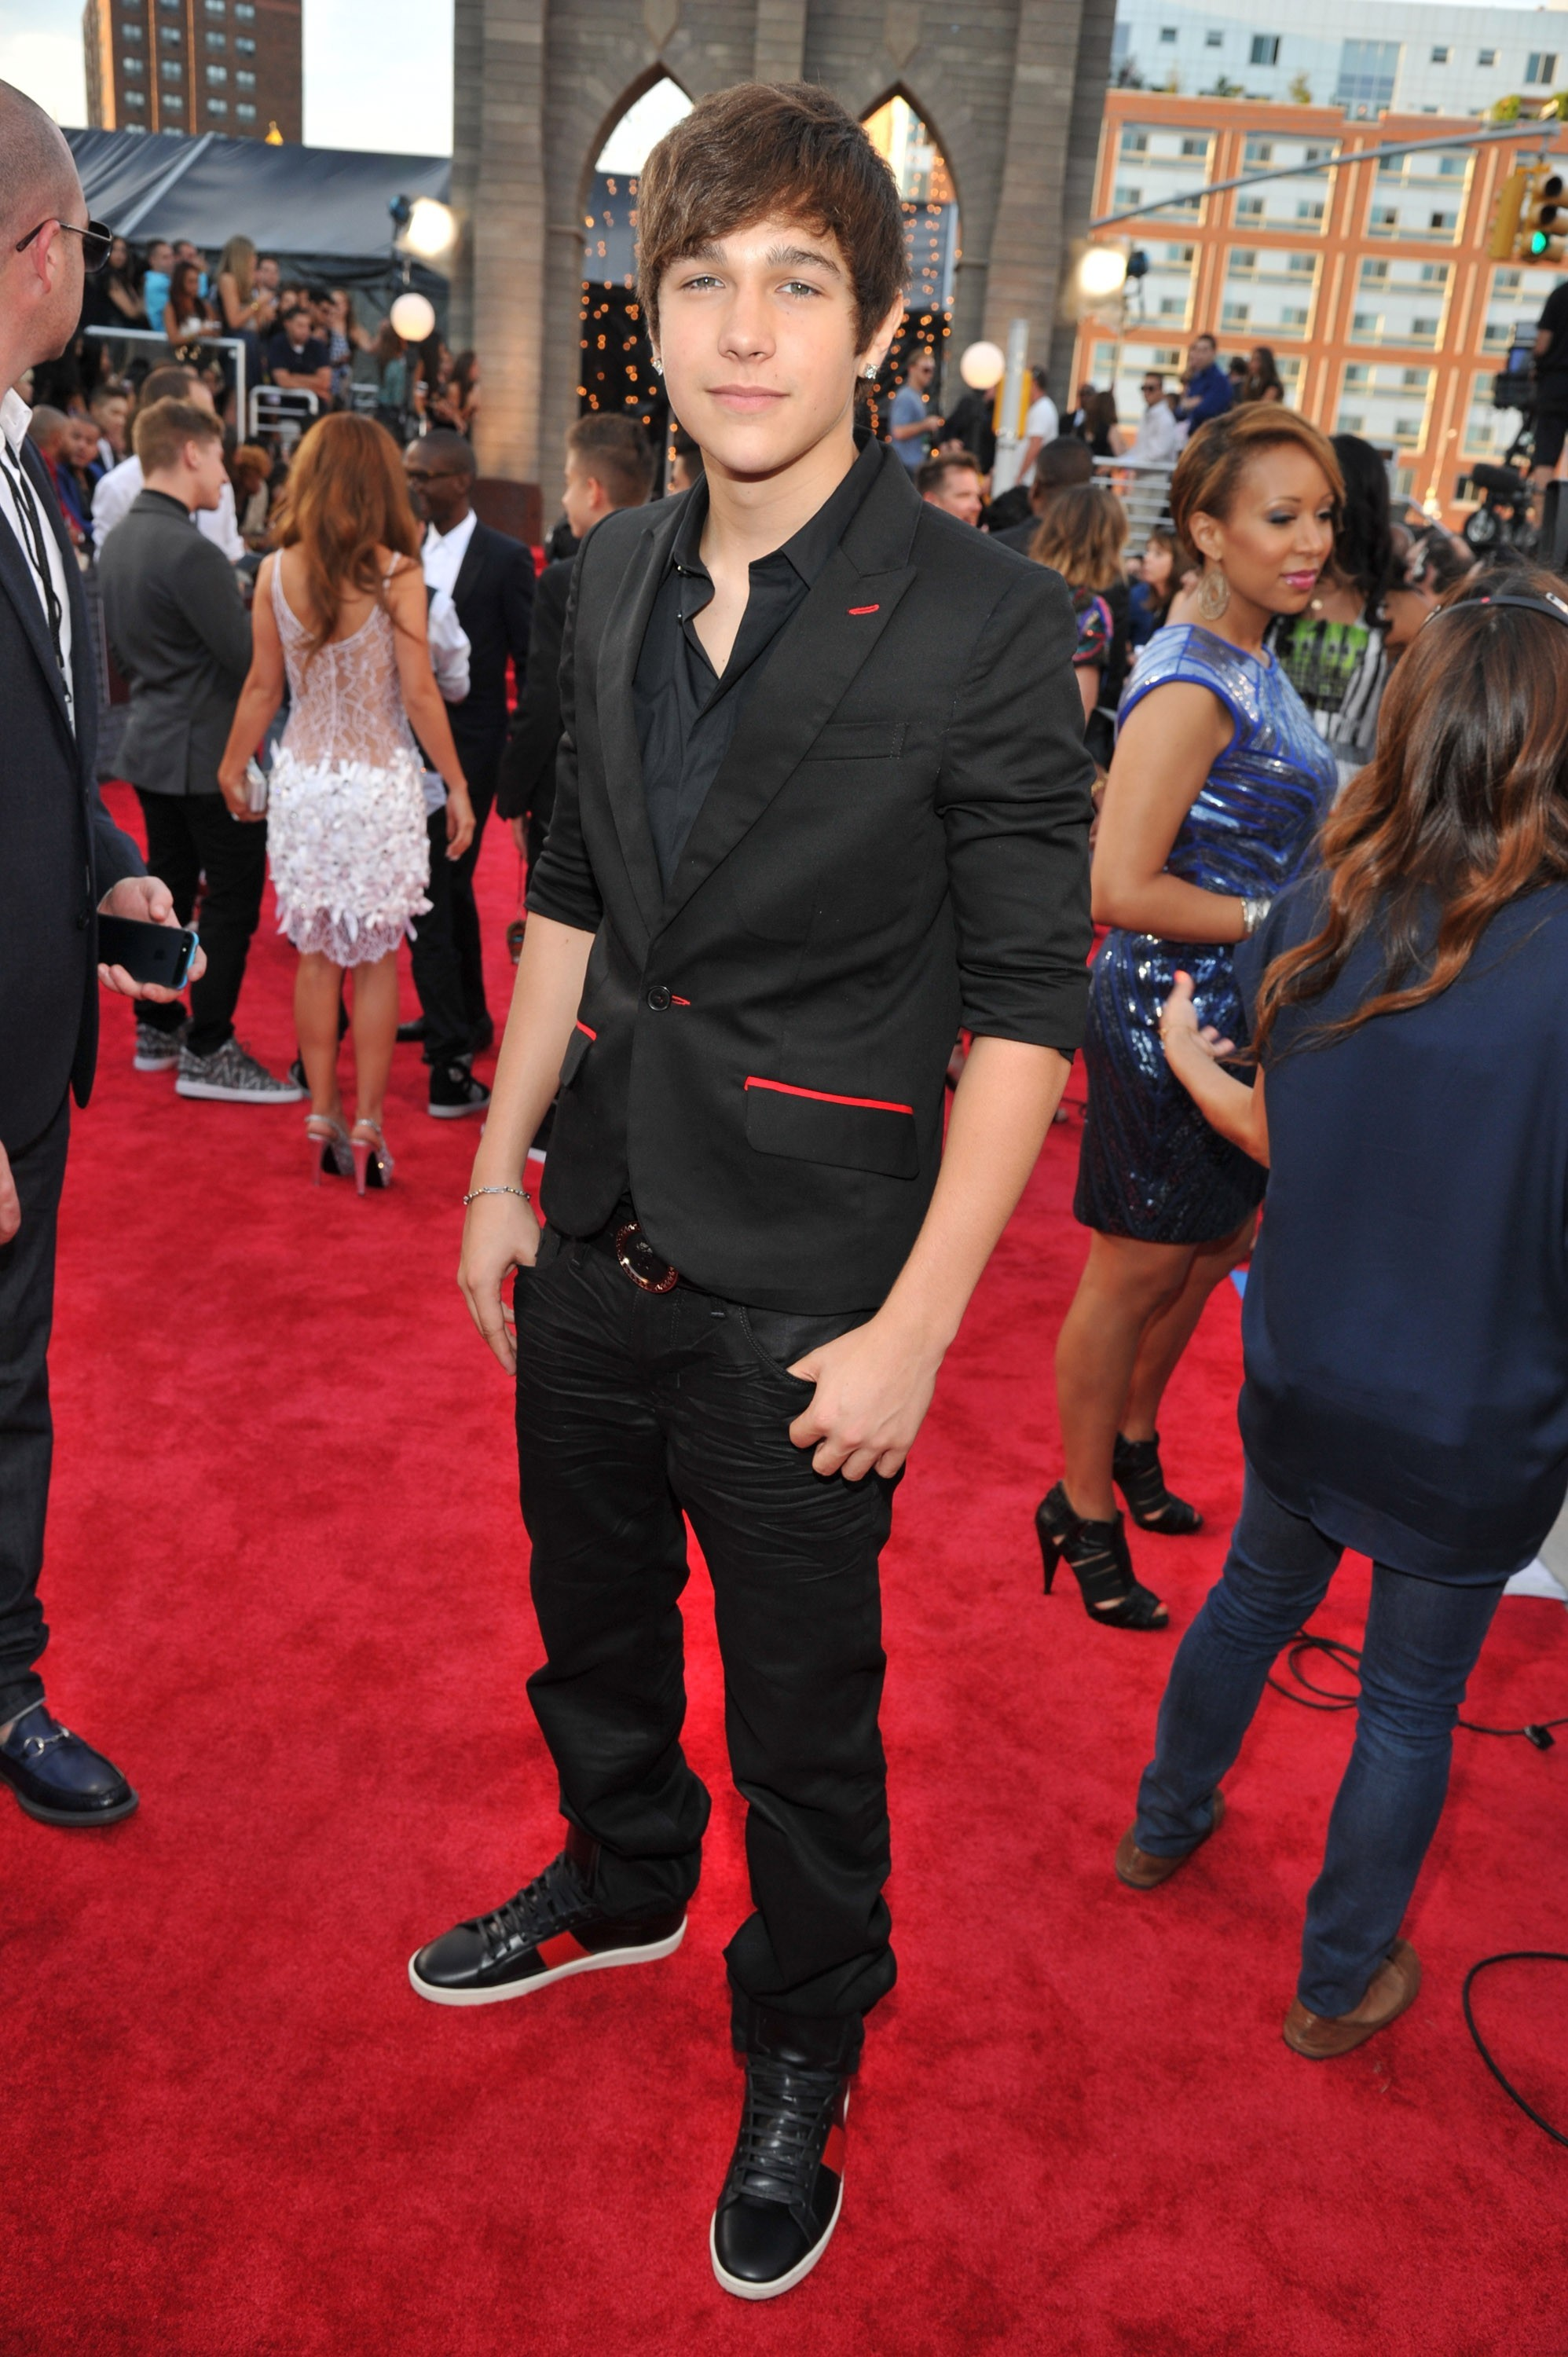 Austin Mahone at VMAs